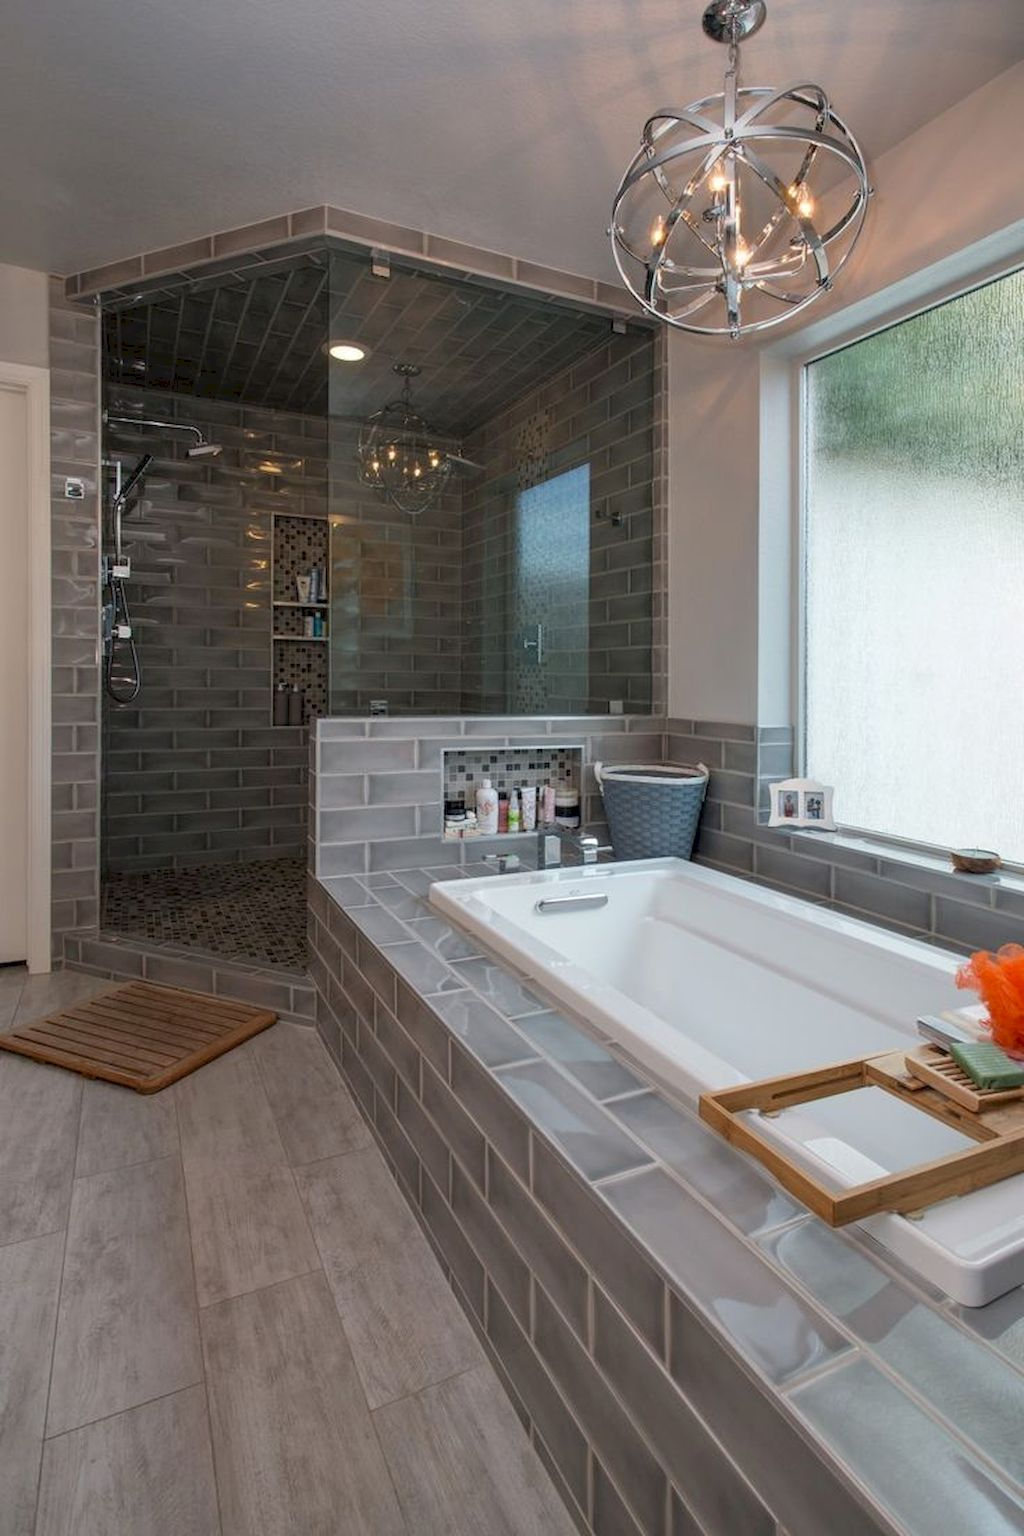 60 Small Master Bathroom Remodel Ideas In 2020 With Images Farmhouse Master Bathroom Modern Master Bathroom Luxury Bathroom Master Baths